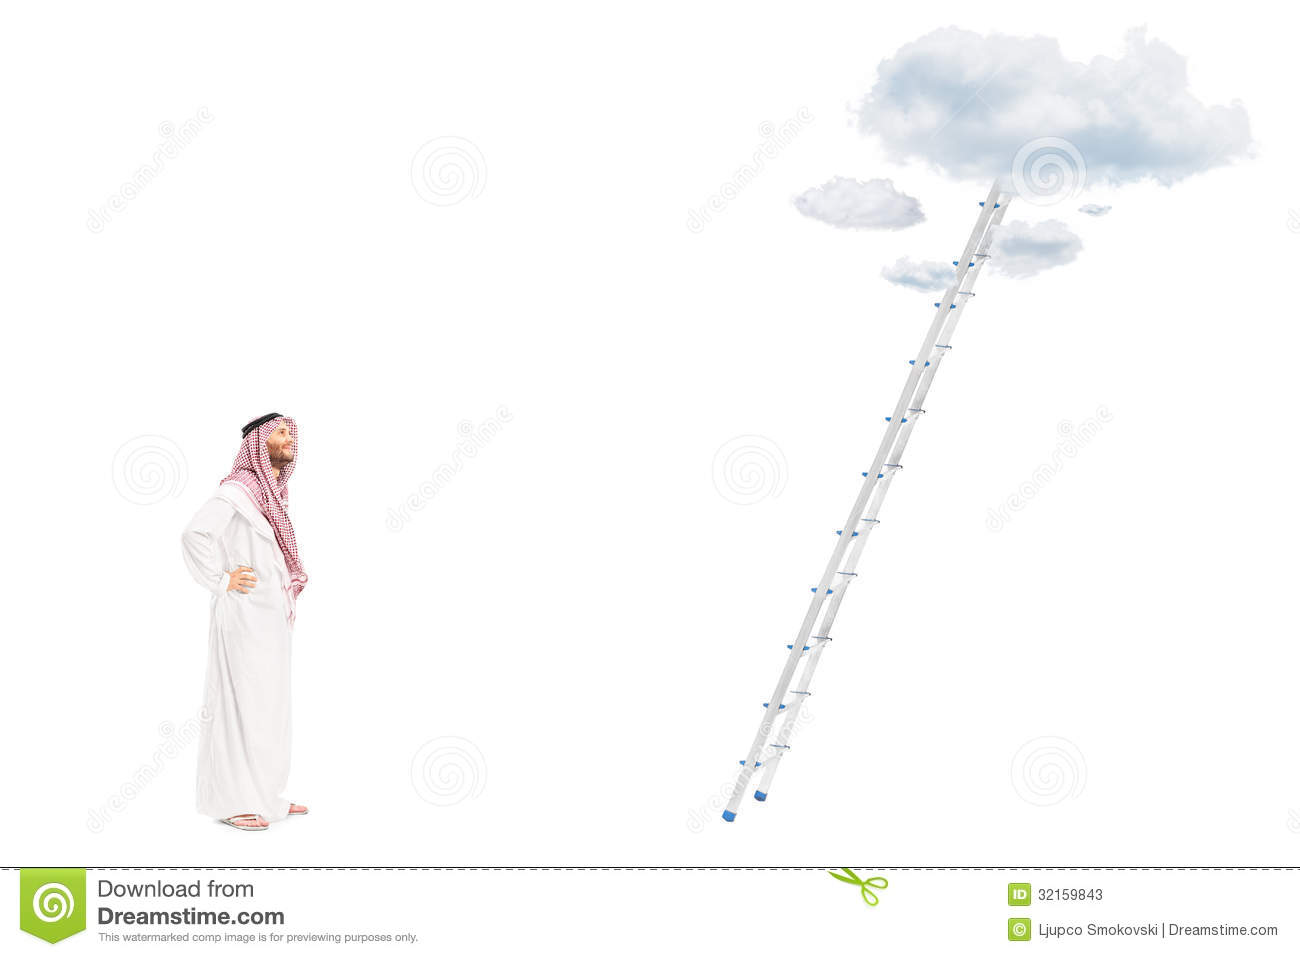 Stock Photos Male Arab Person Standing Front Ladder Full Length Portrait Cloud Looking Isolated White Background Shot Image32159843 furthermore Marilyn Monroe Posters Vector Material moreover Dslr likewise Retro Man Vintage Line Drawing 1310353 moreover Wildlife Monochrome Wild Art 101058. on portrait lens at